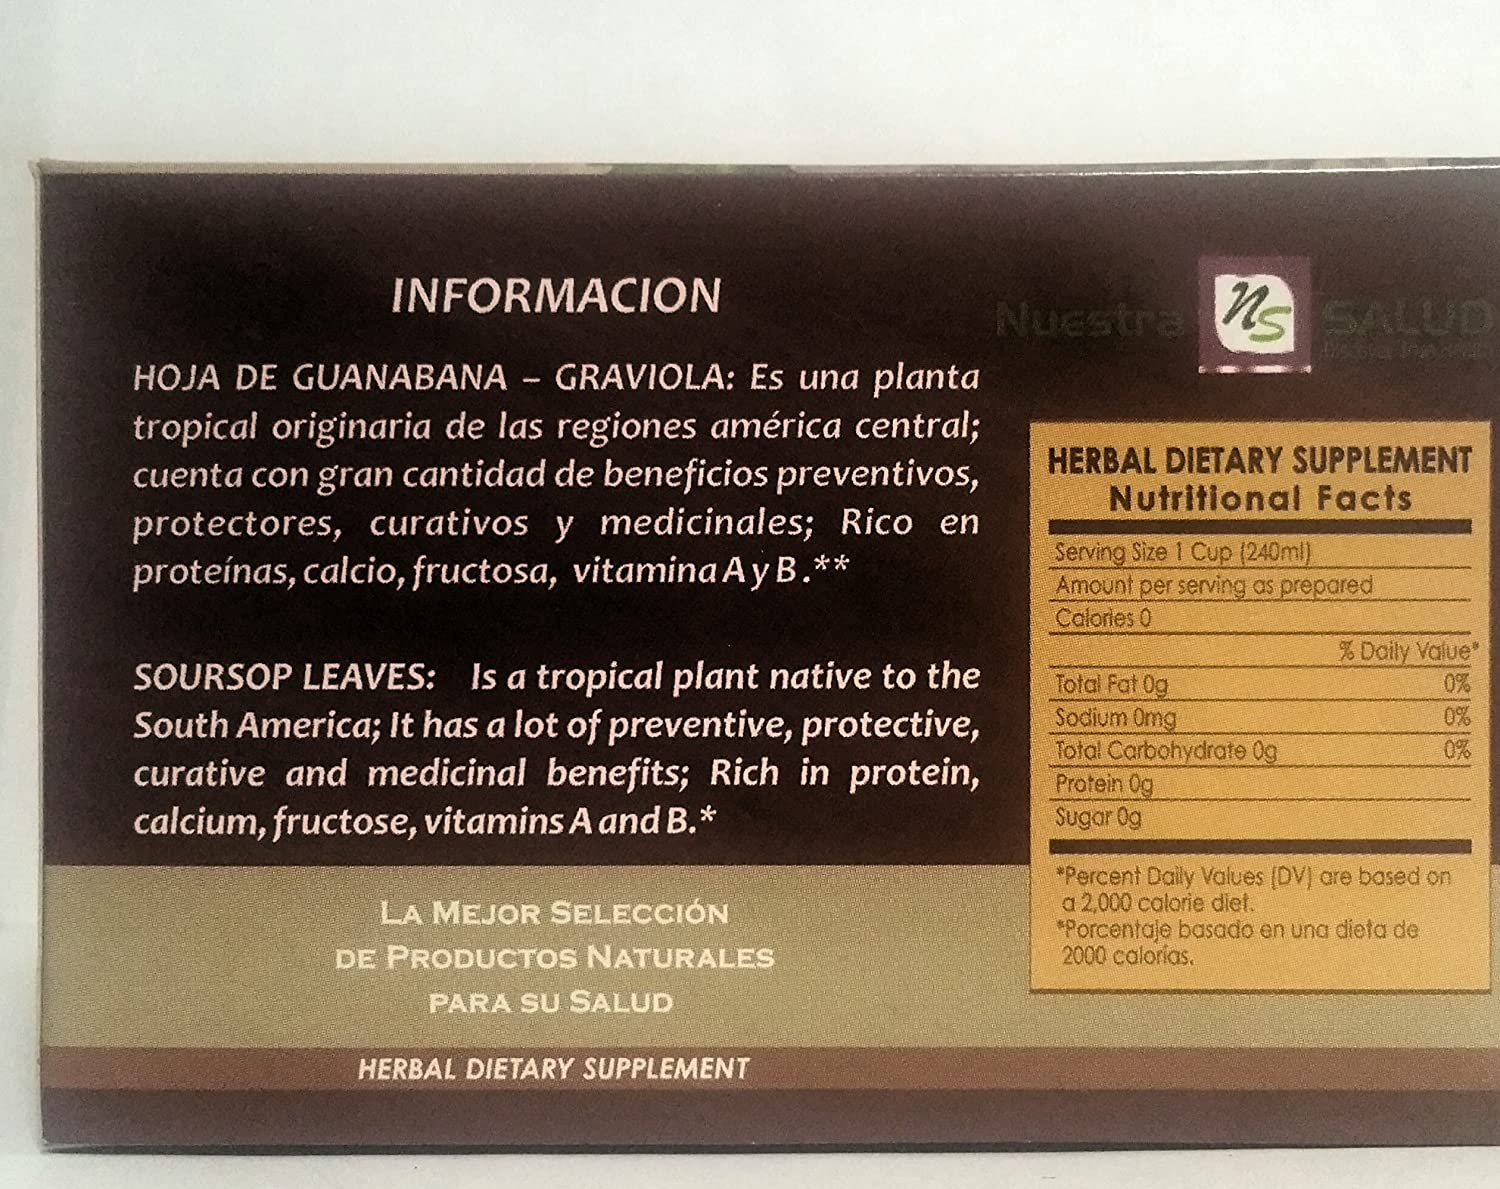 Amazon.com : 3-Pack Nuestra Salud Tea (Moringa Slim)-20 teabags each box. : Grocery & Gourmet Food